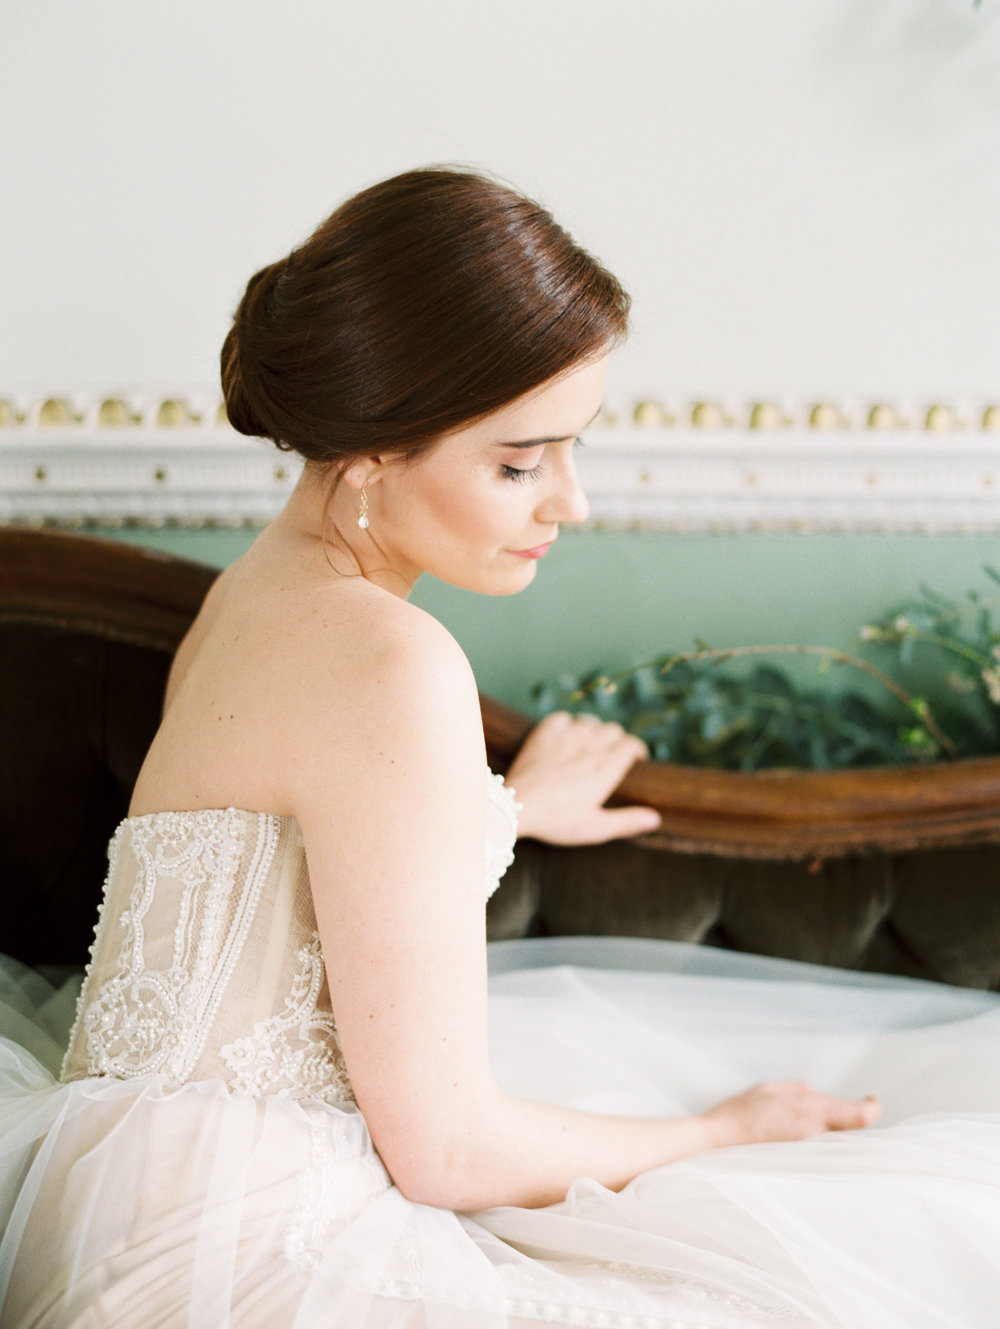 The Timeless Stylist-Elegant and Romantic Wedding Styling-Classic Bridal Hair.jpg